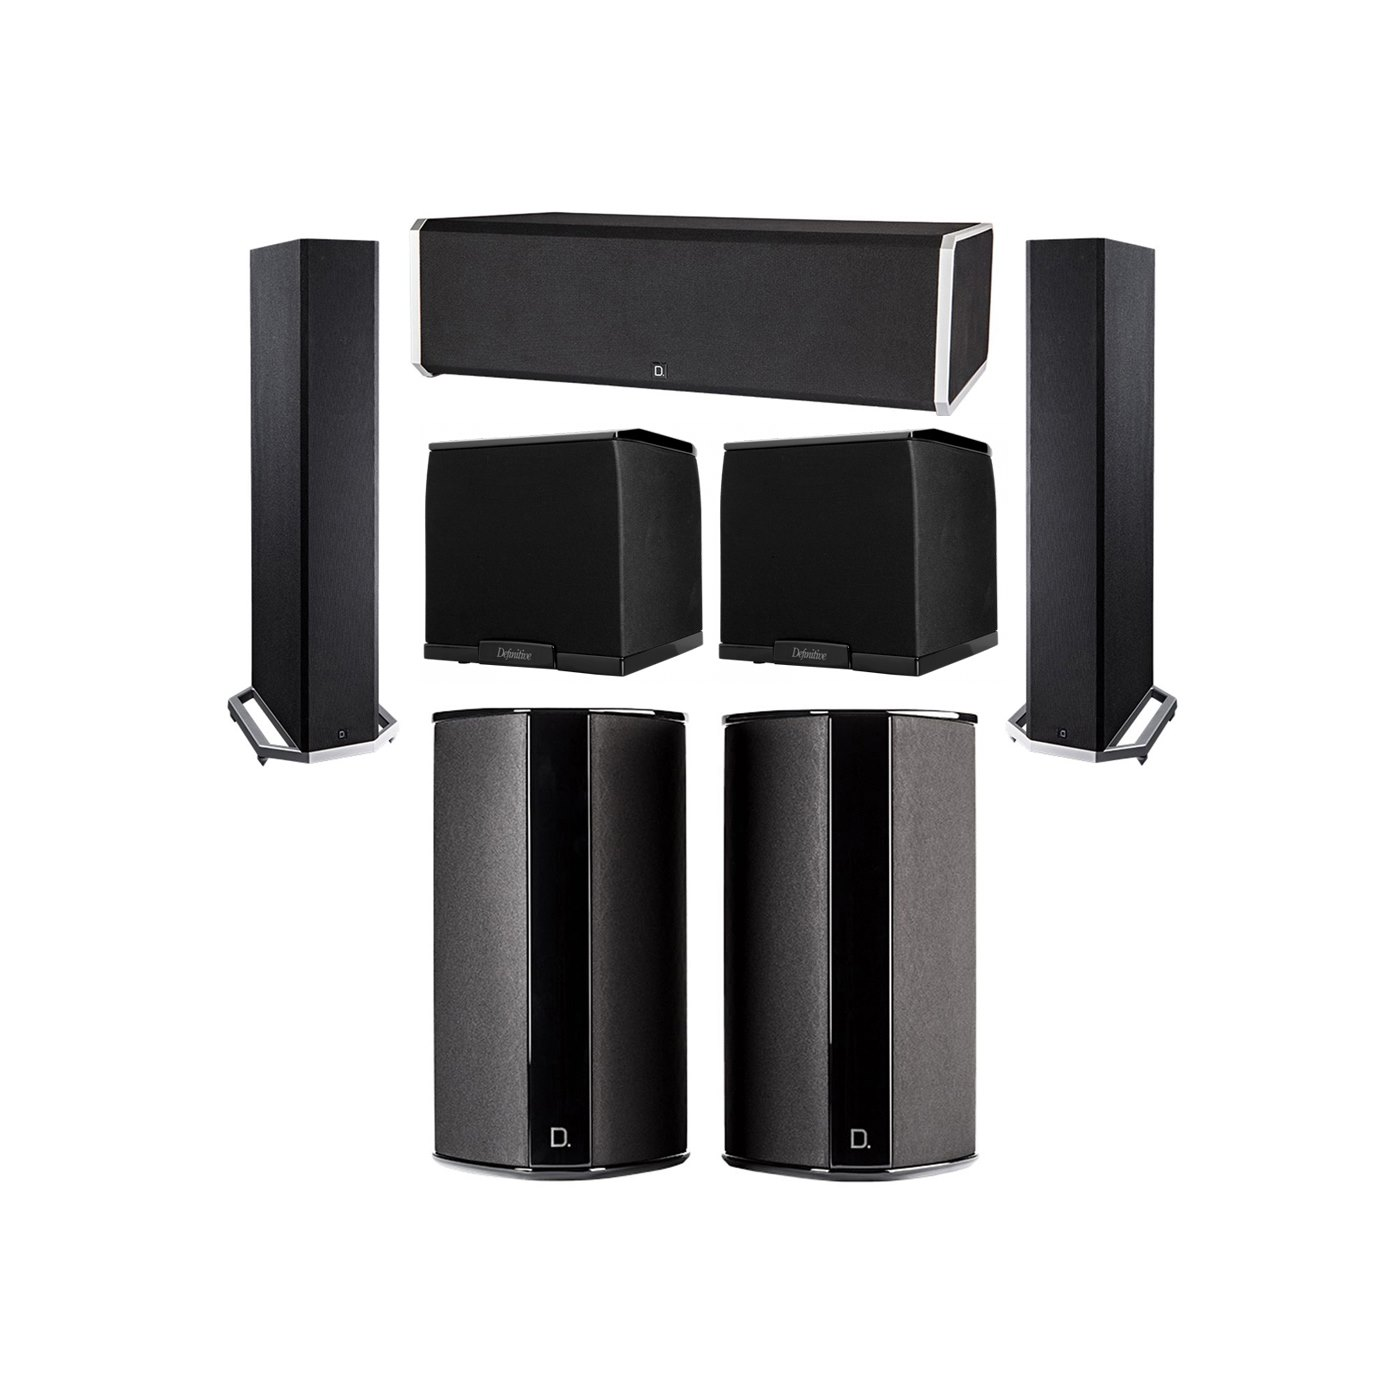 Definitive Technology 5.2 System with 2 BP9020 Tower Speakers, 1 CS9080 Center Channel Speaker, 2 SR9080 Surround Speaker, 2 Definitive Technology SuperCube 2000 Powered Subwoofer